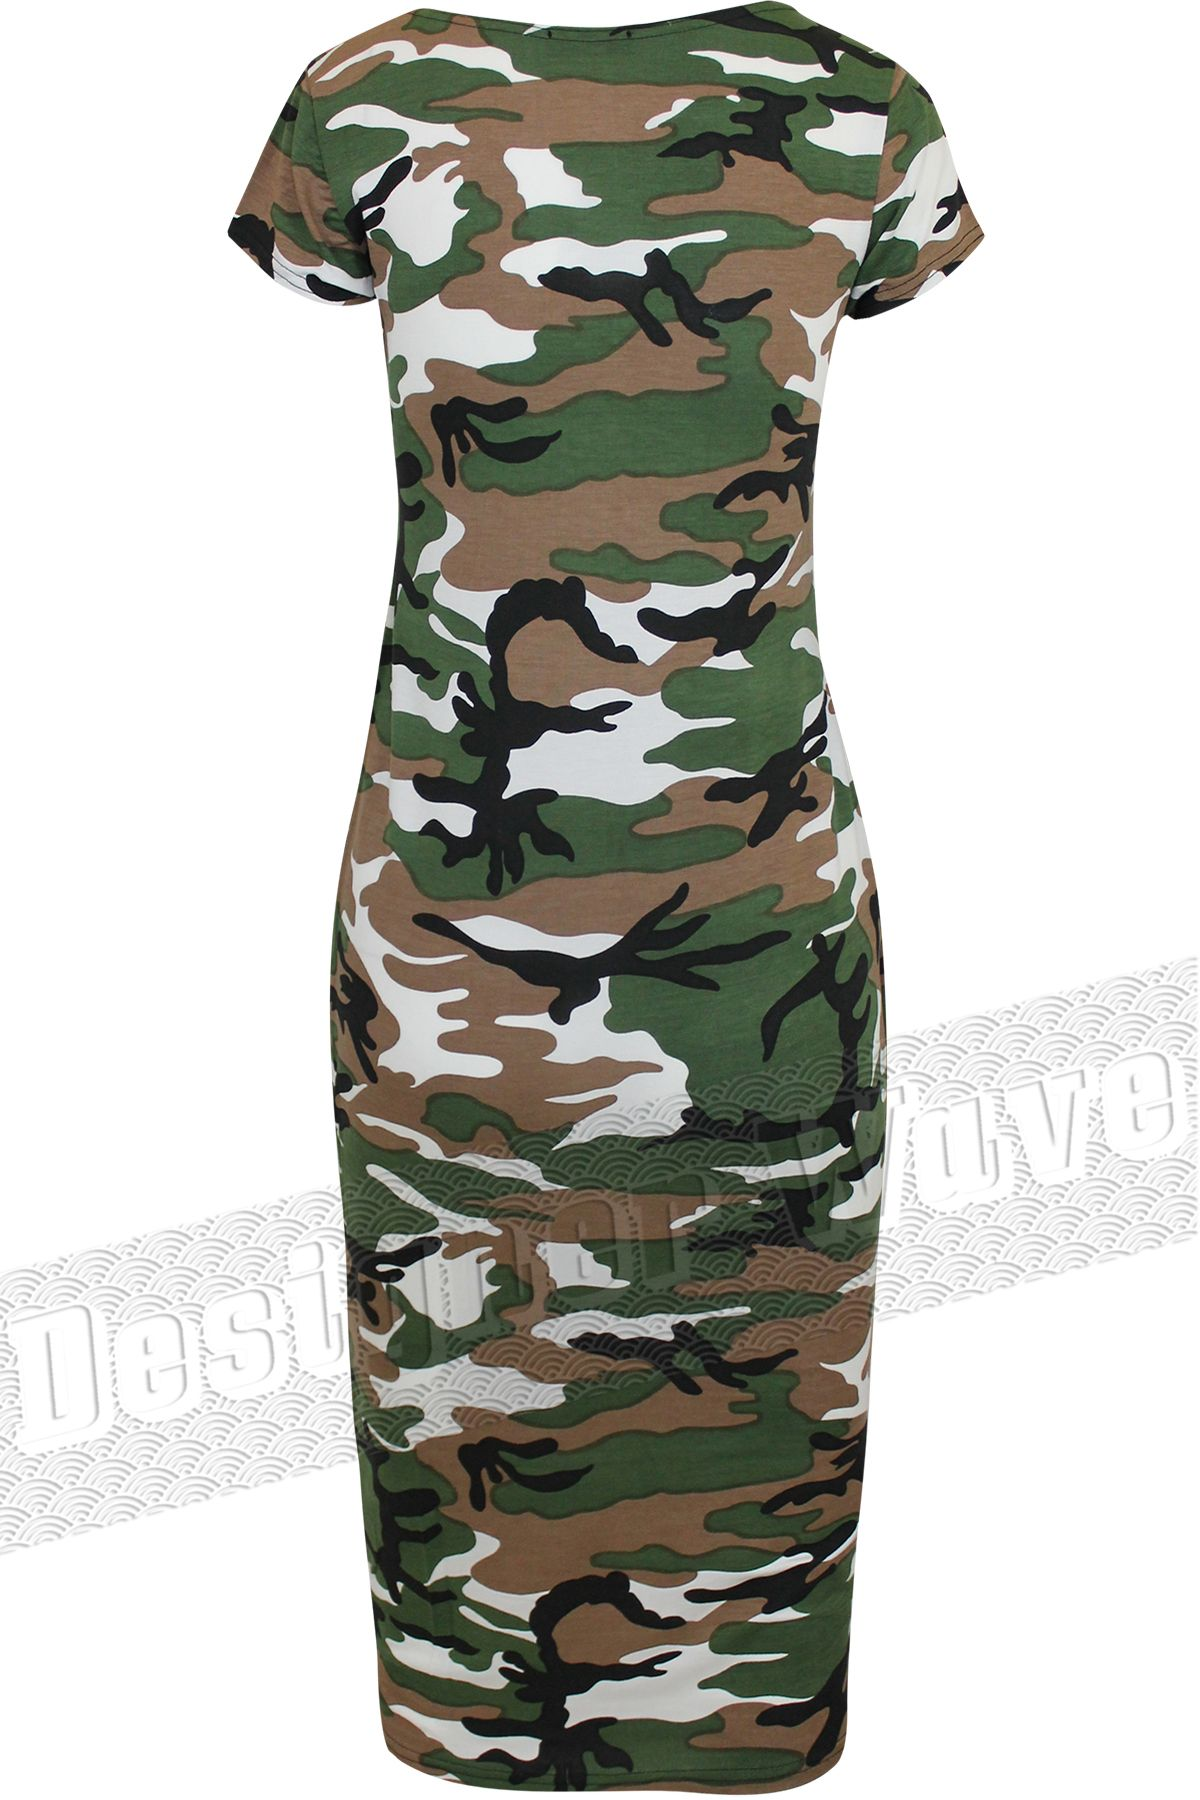 dcddb4f4c7804 Pink Camouflage Dresses for Women | Clothes, Shoes & Accessories > Women's  Clothing > Dresses